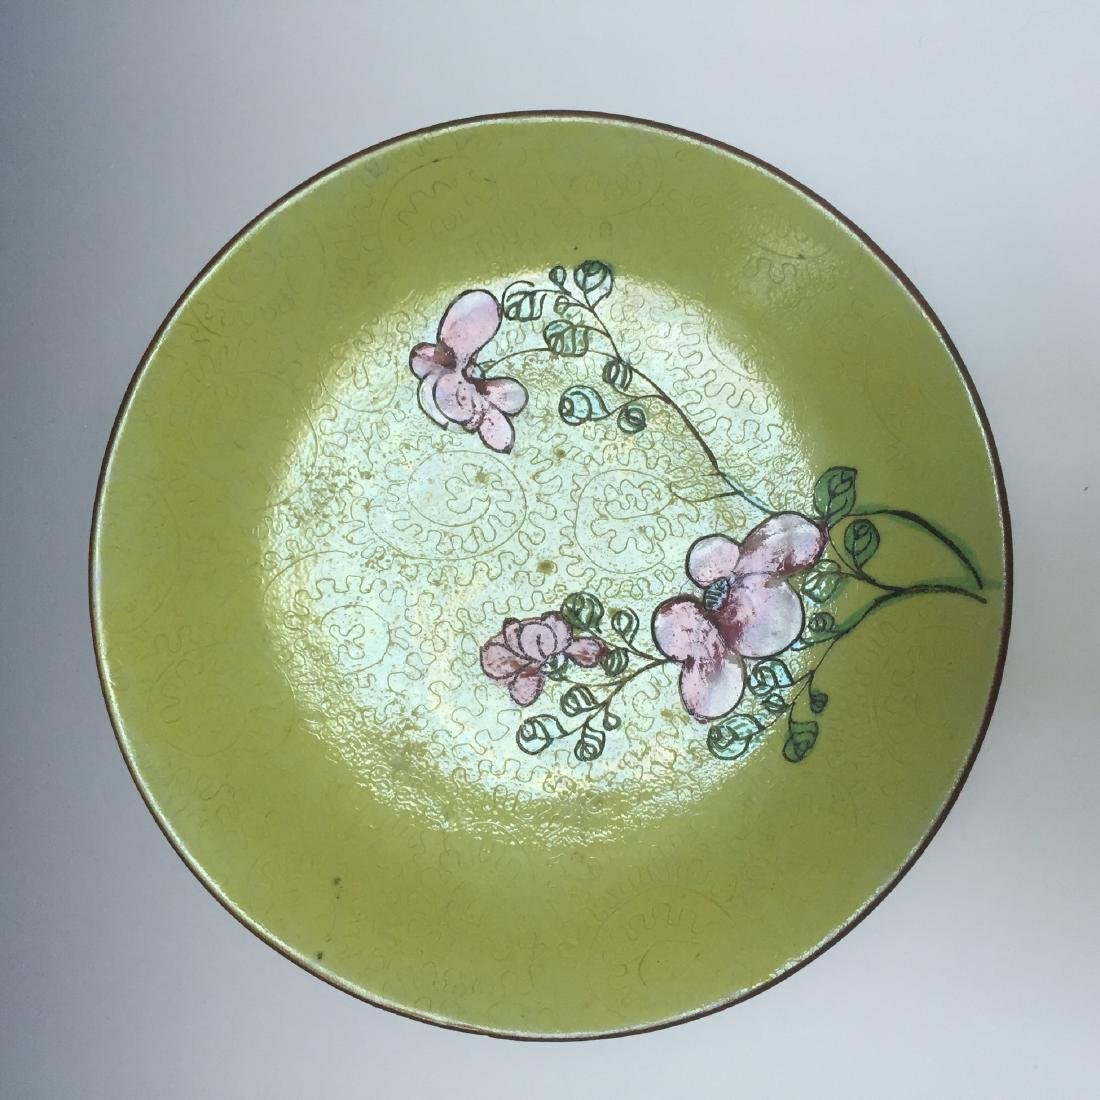 A BUEATIFUL CHINESE ANTIQUE FAMILLE ROSE DISH, 19TH CT - 3